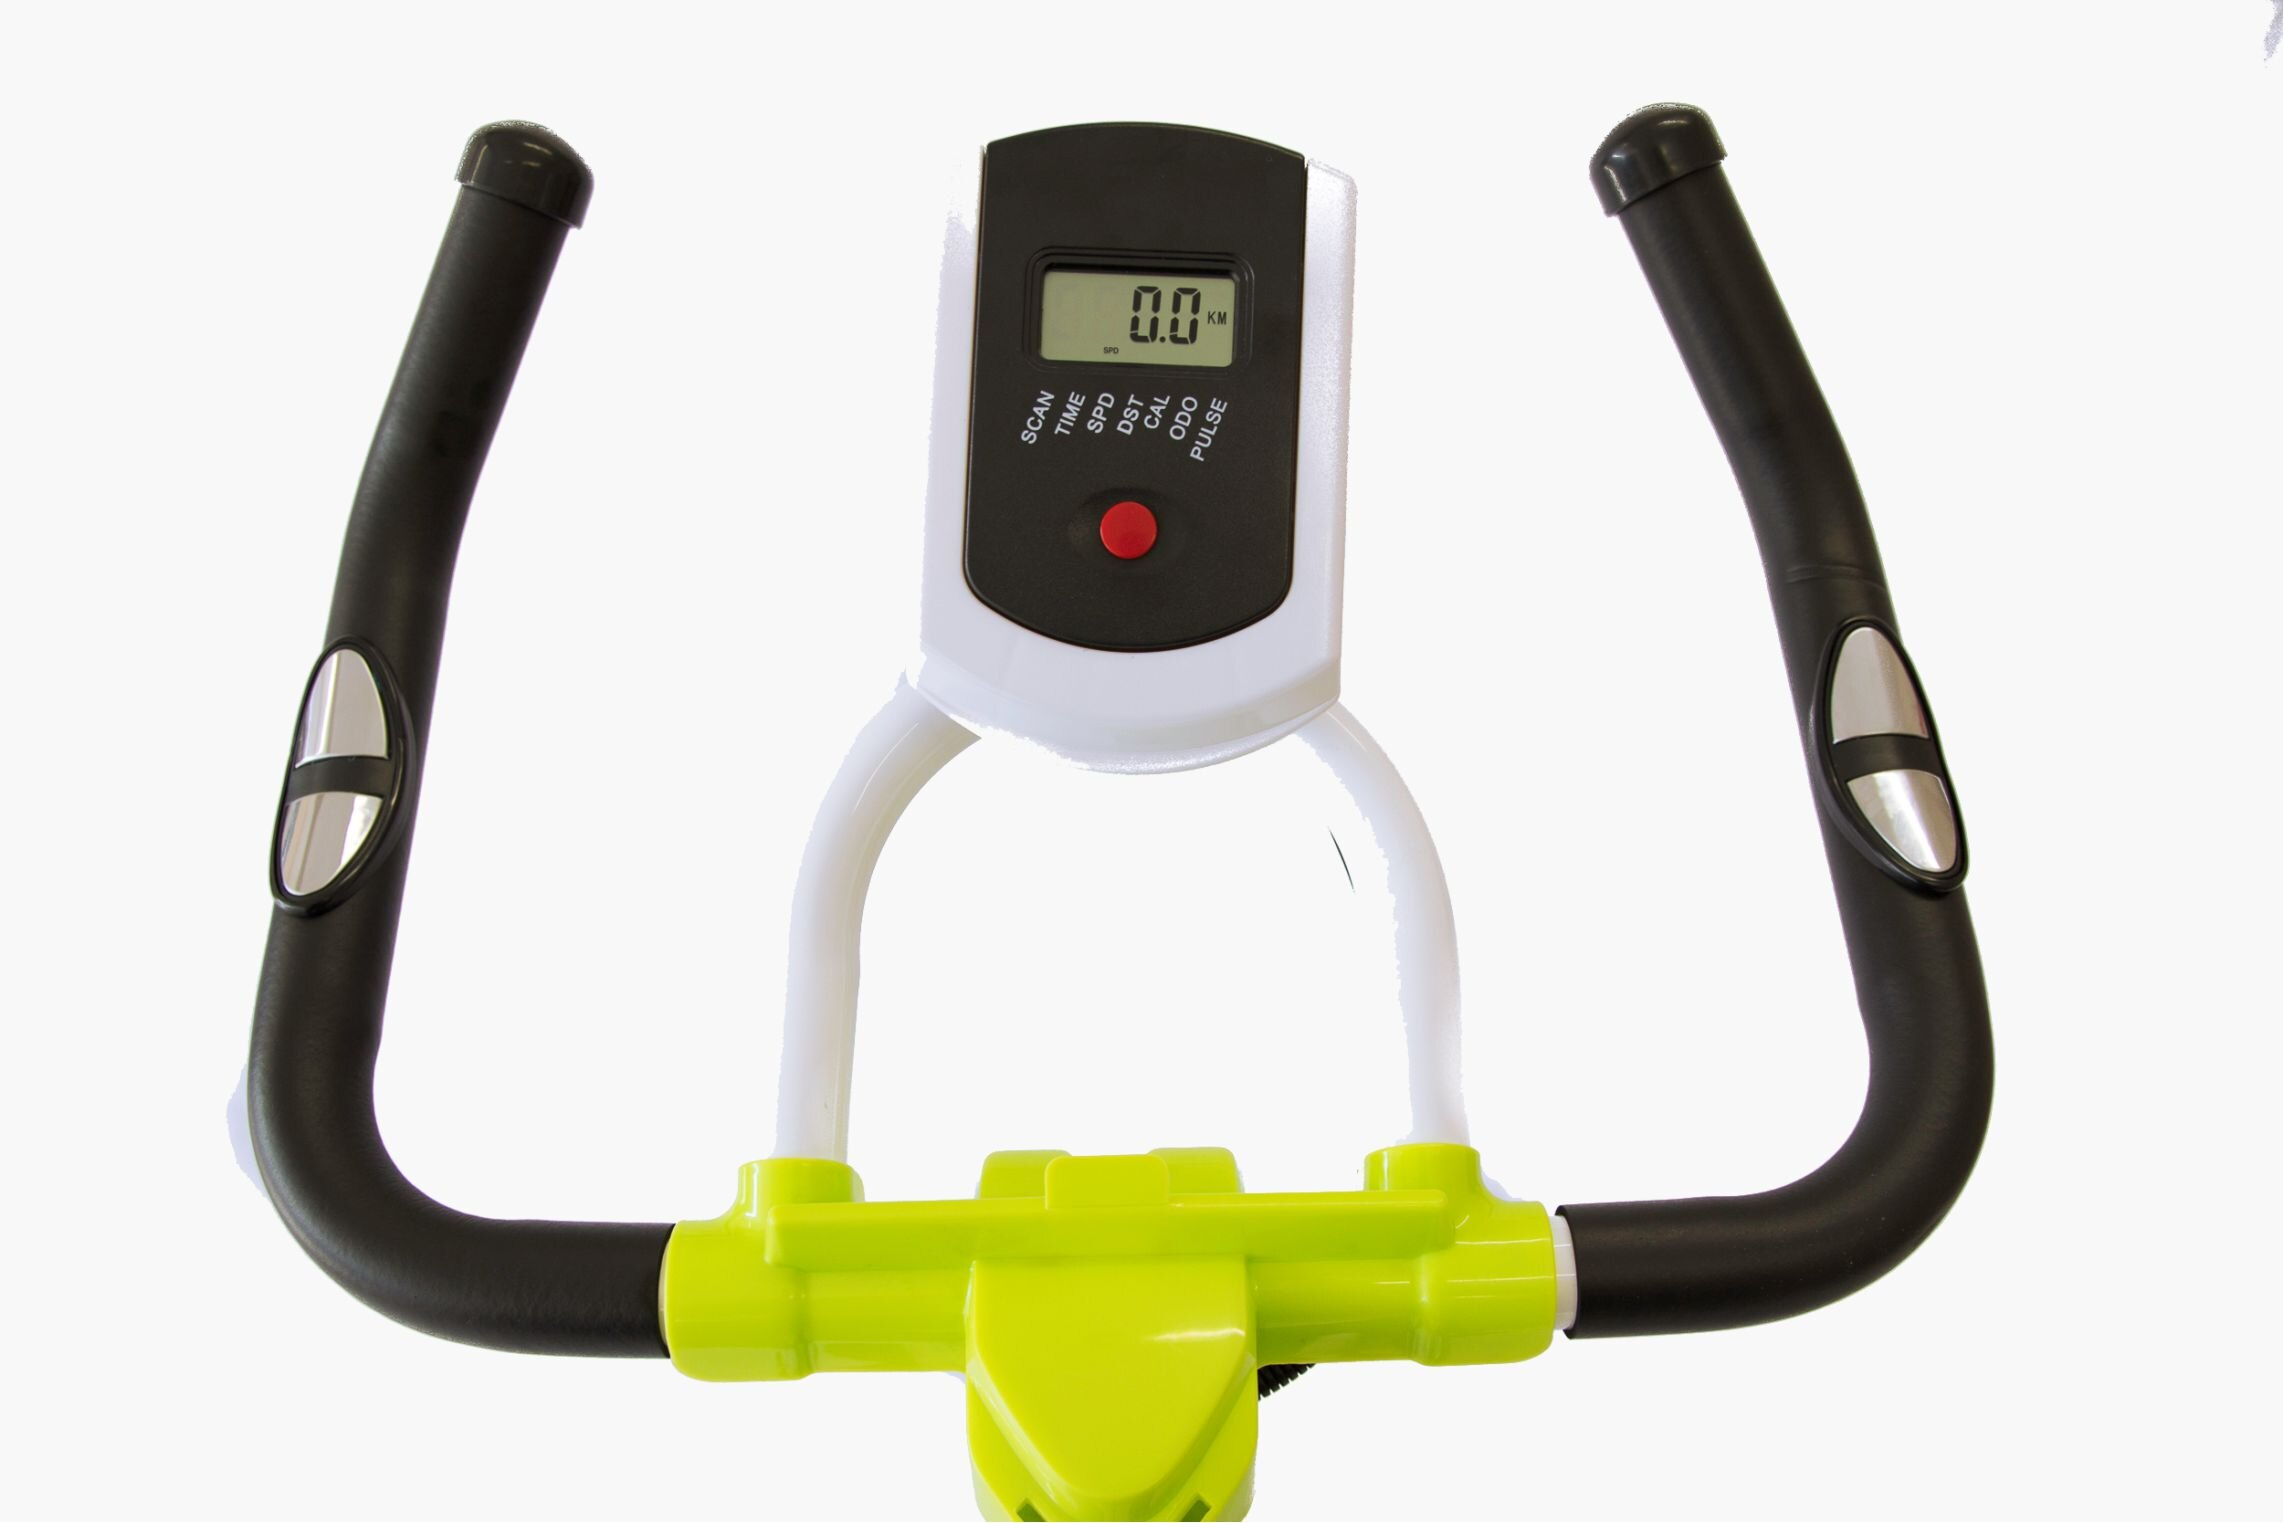 Bicicleta de spinning fitness - microcomputadora LCD -Spin Extreme 3